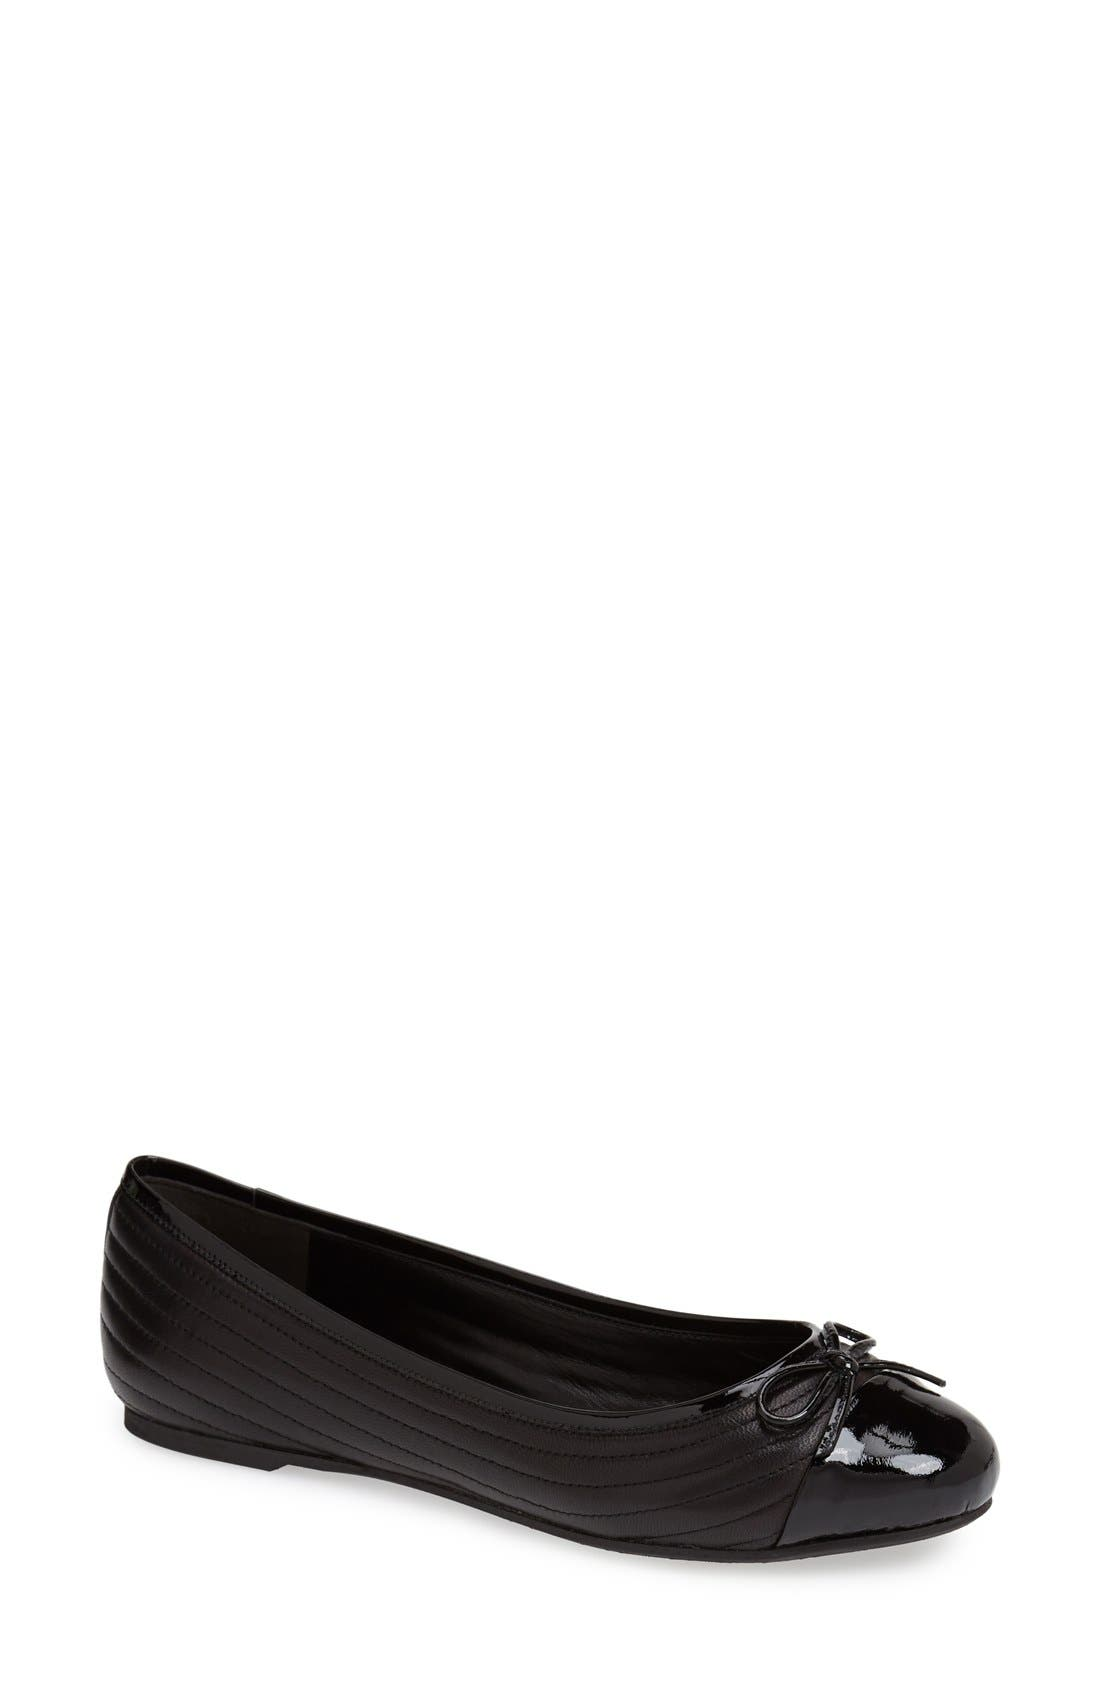 Alternate Image 1 Selected - Delman 'Rise' Skimmer Flat (Women)